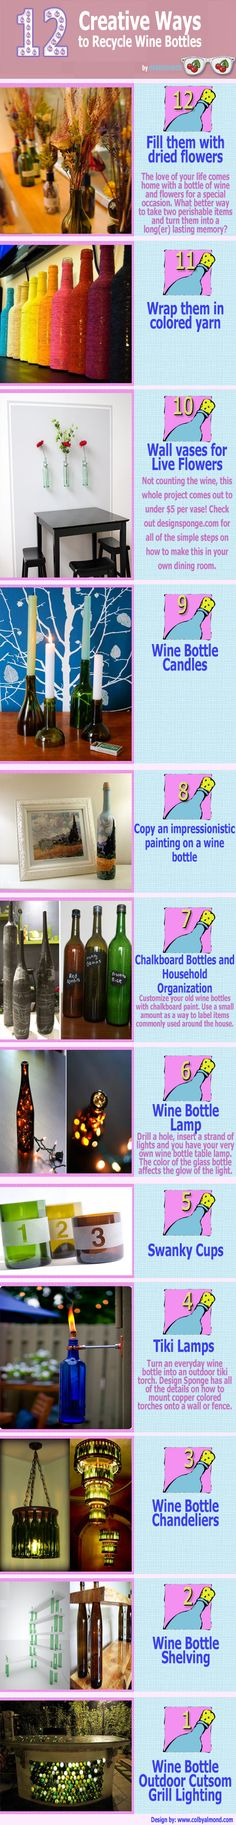 Wine bottle DIY projects! Make vases, candle holders, lamps, cups or shelving. Clever.